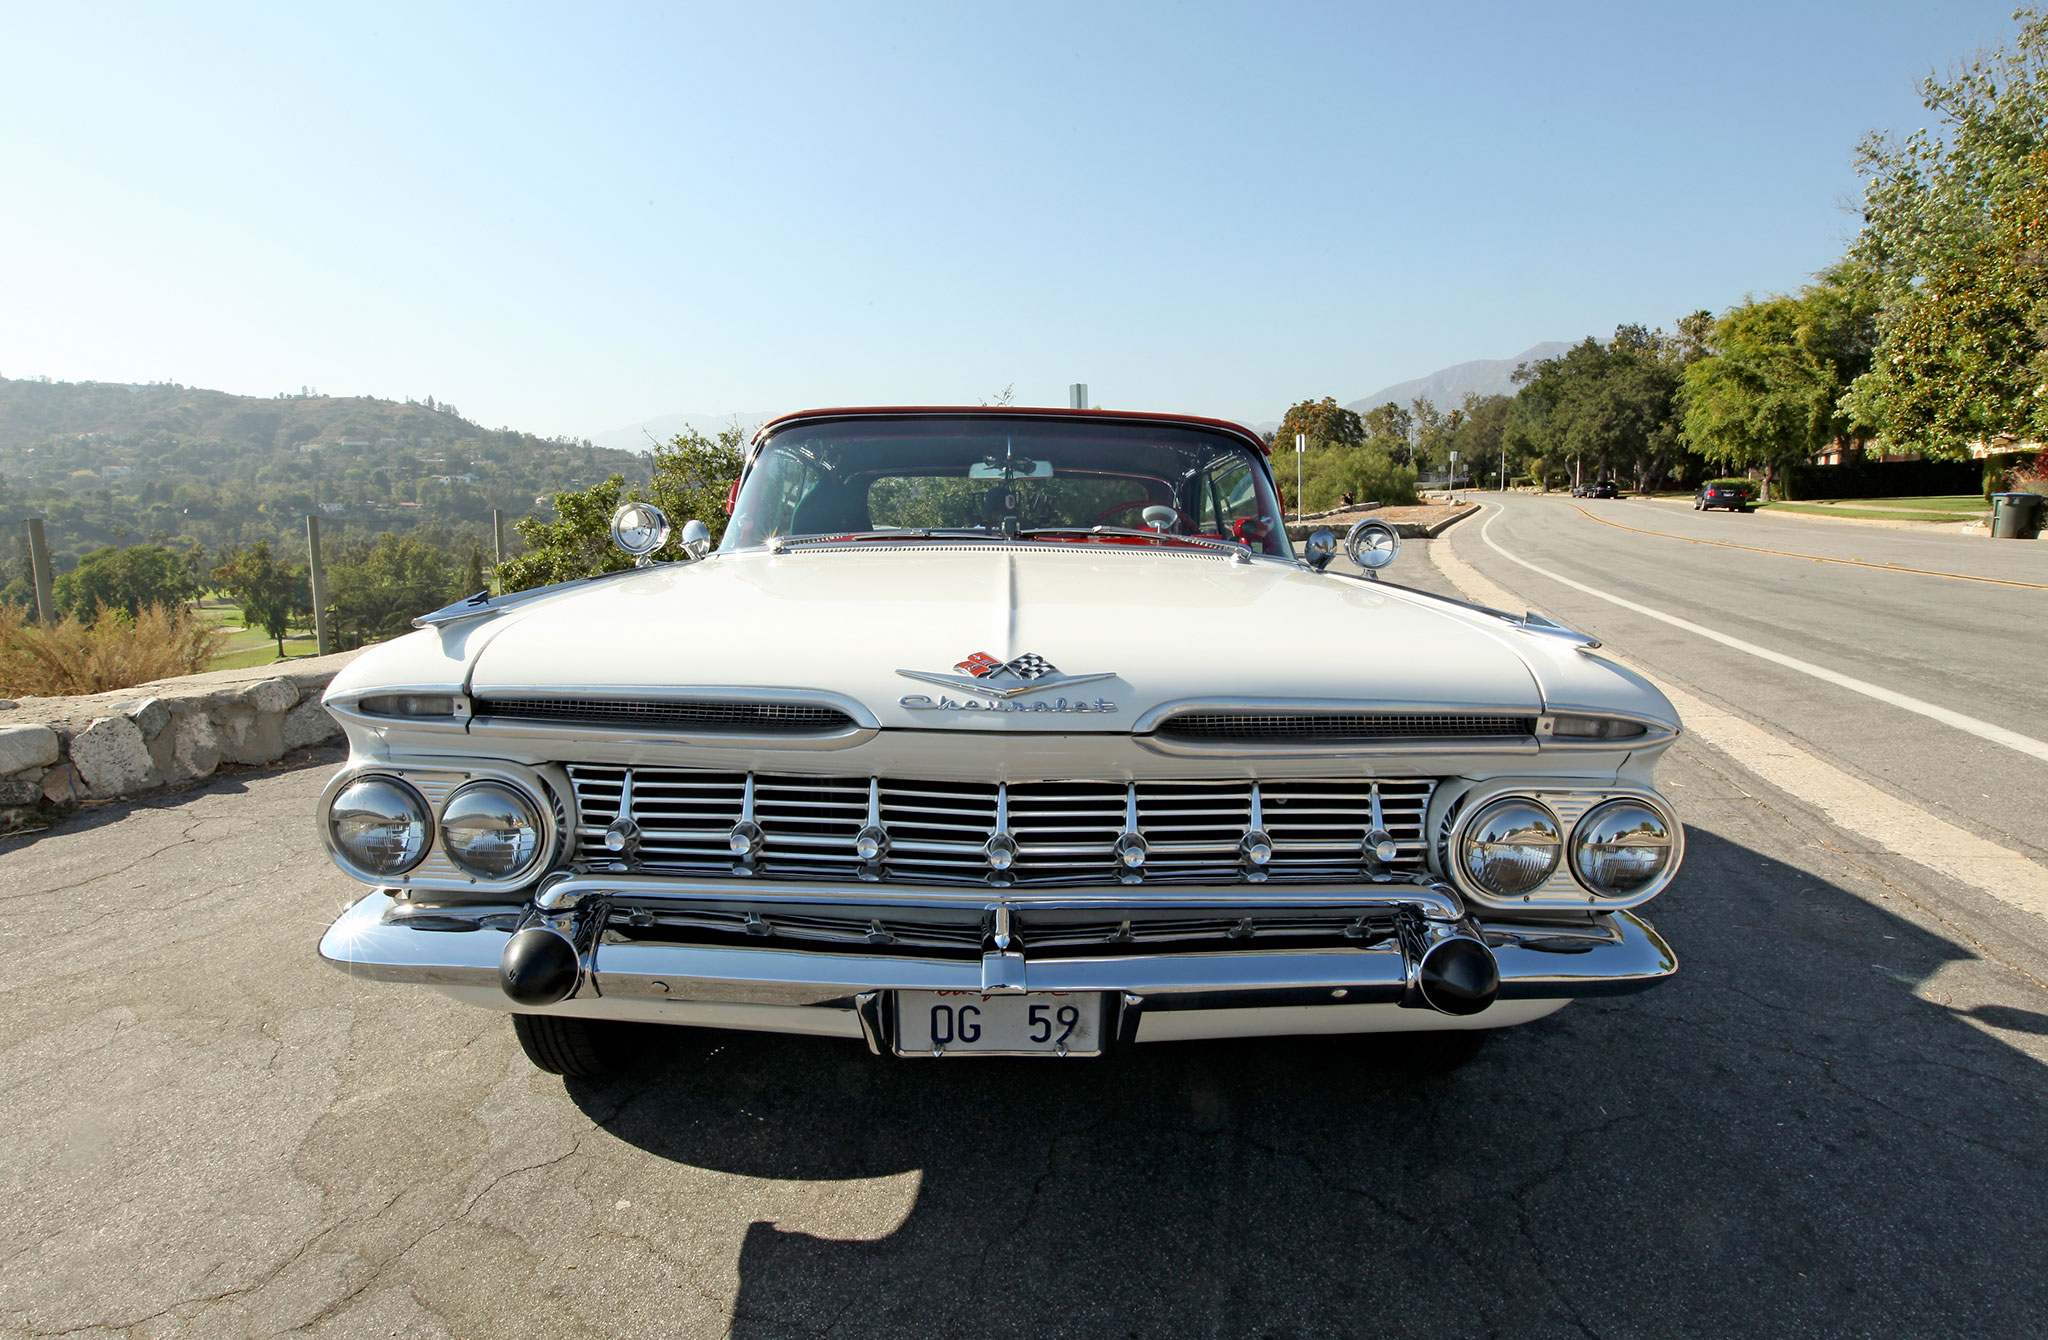 New Chevy Cars >> 1959 Chevrolet Impala Convertible - Semi Retired